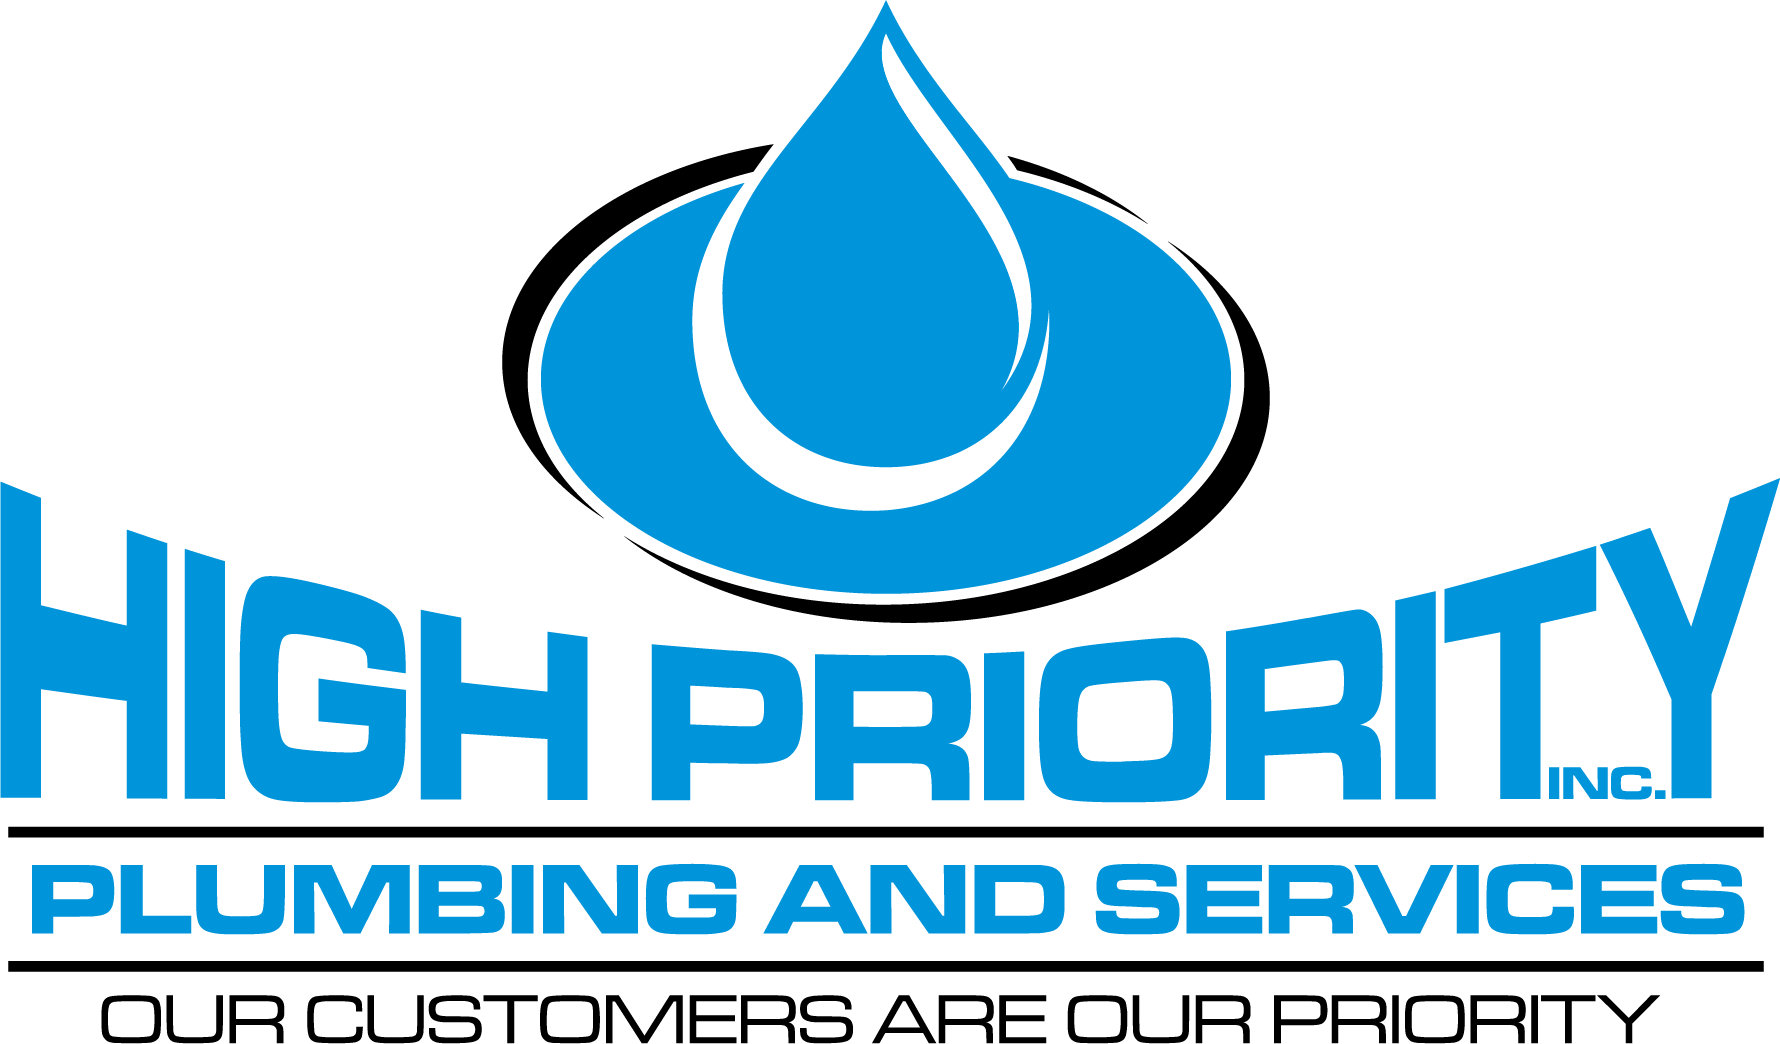 High Priority Plumbing and Services, INC Logo